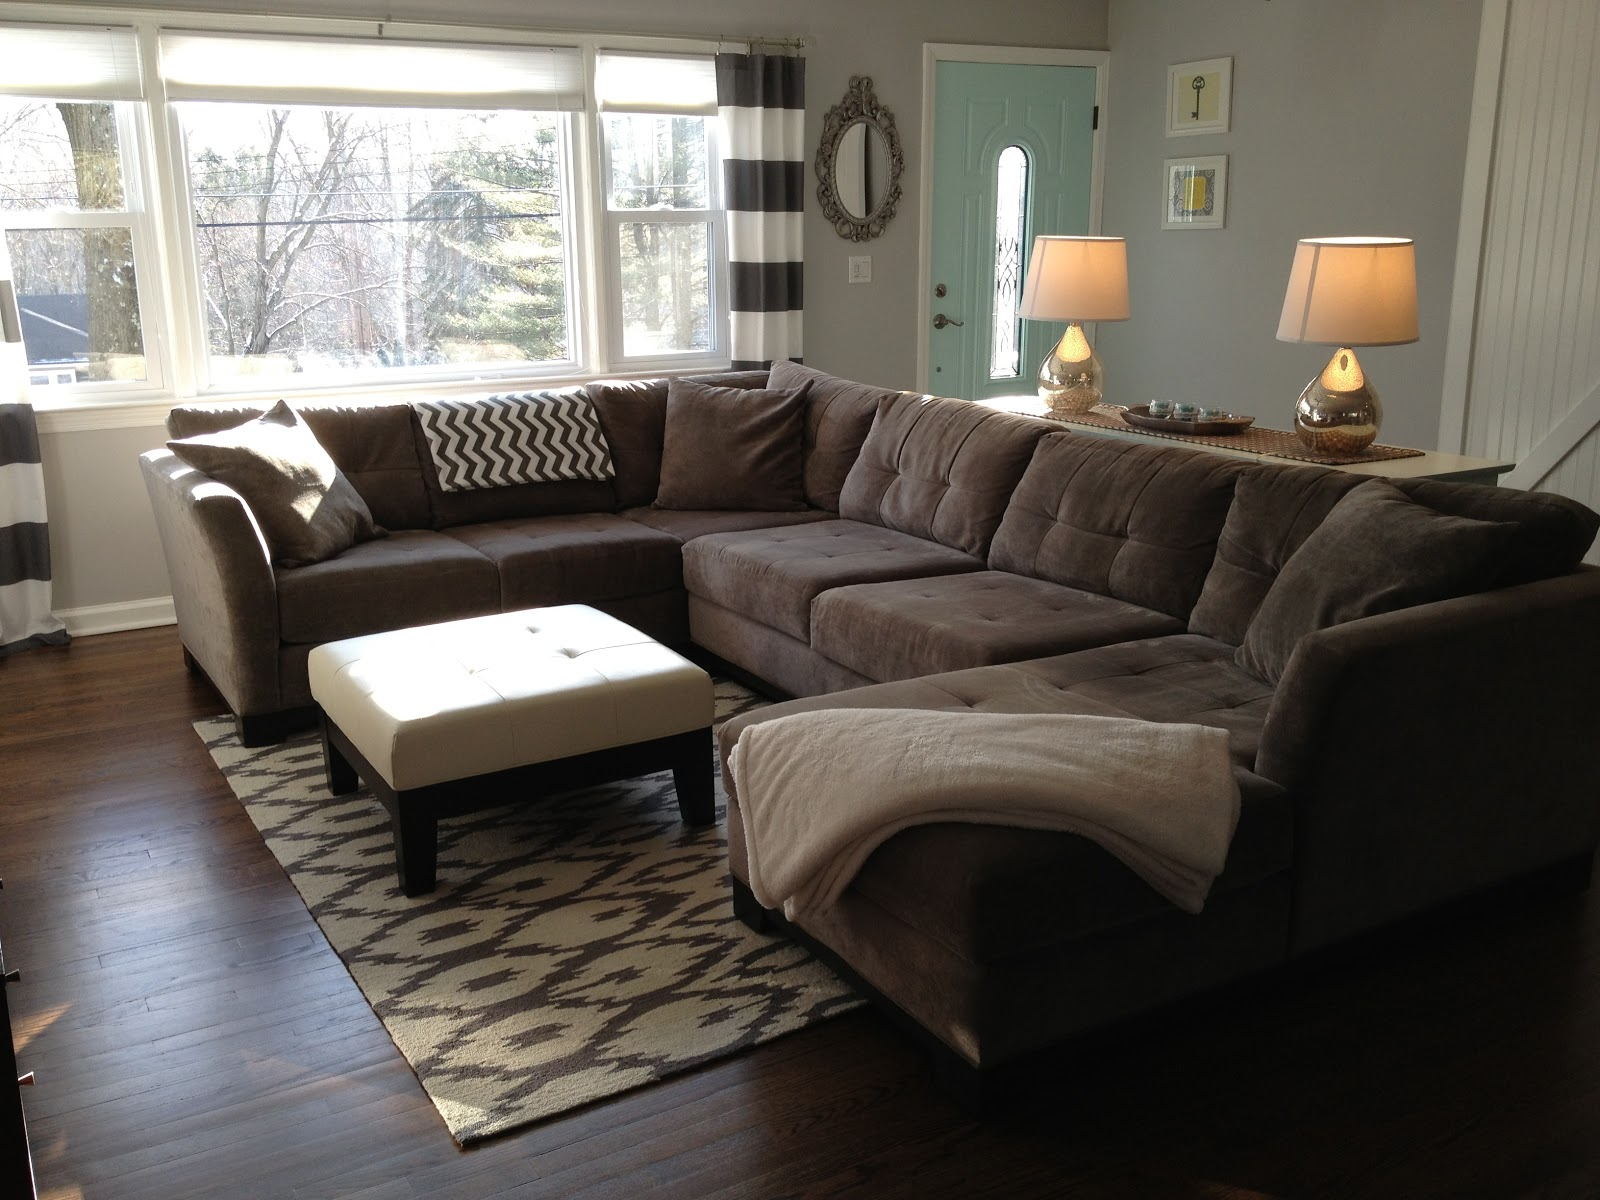 Retro ranch reno rugs revealed for Sectional sofa living room layout